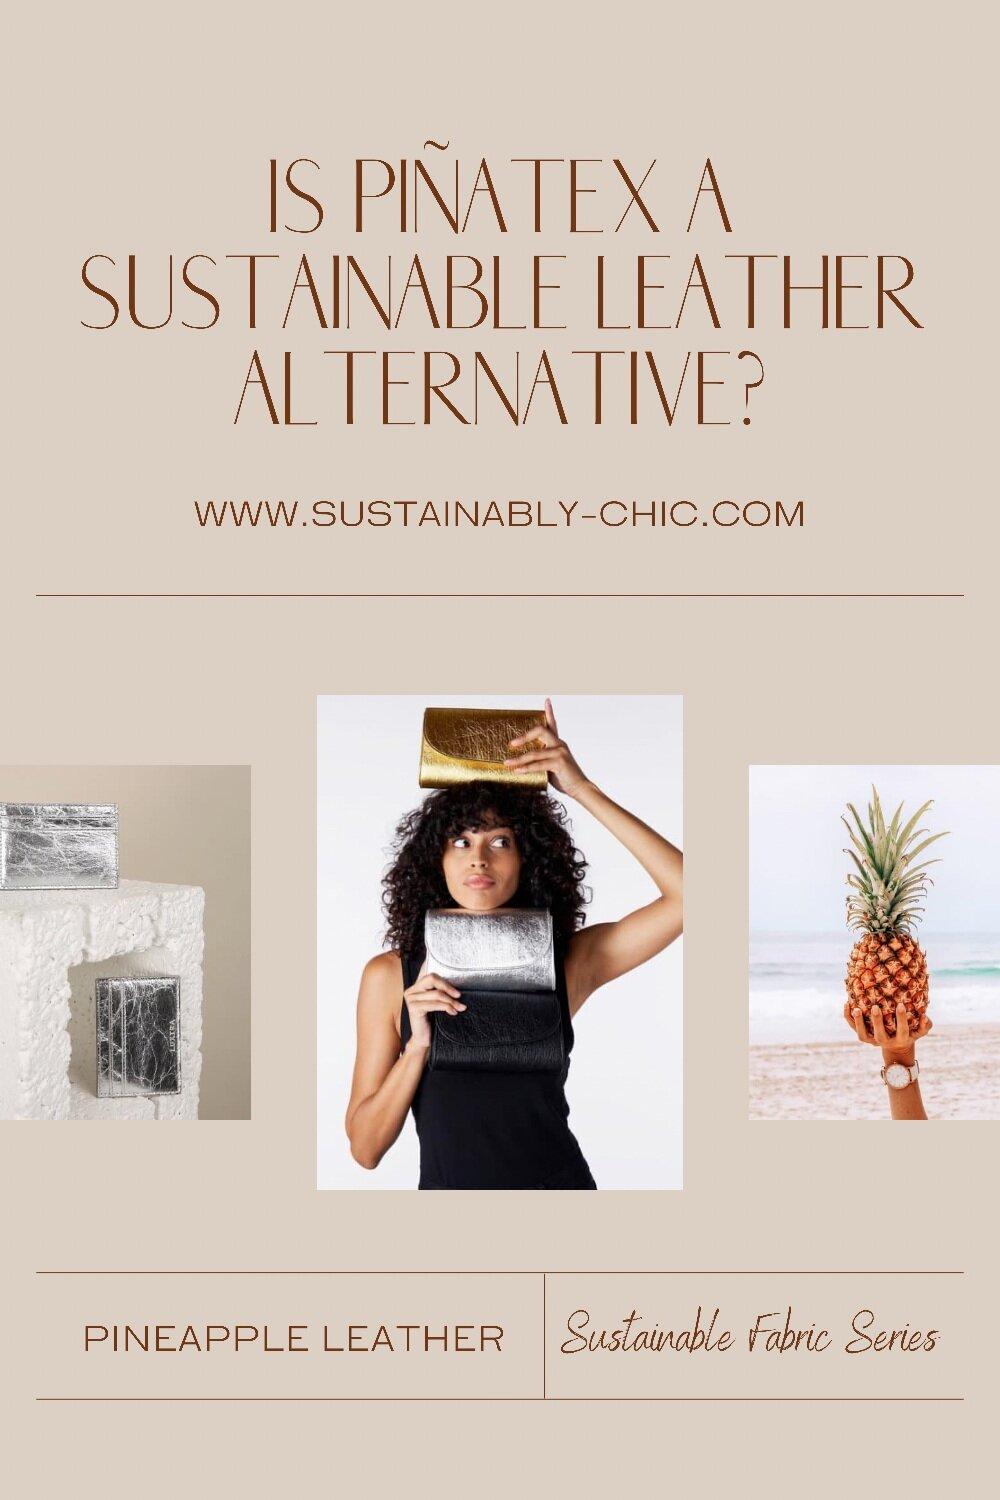 Sustainably Chic   Sustainable Fashion Blog   What is Pinatex?   Vegan Leather Alternatives   Pineapple Leather   Sustainable Fabric Series.PNG